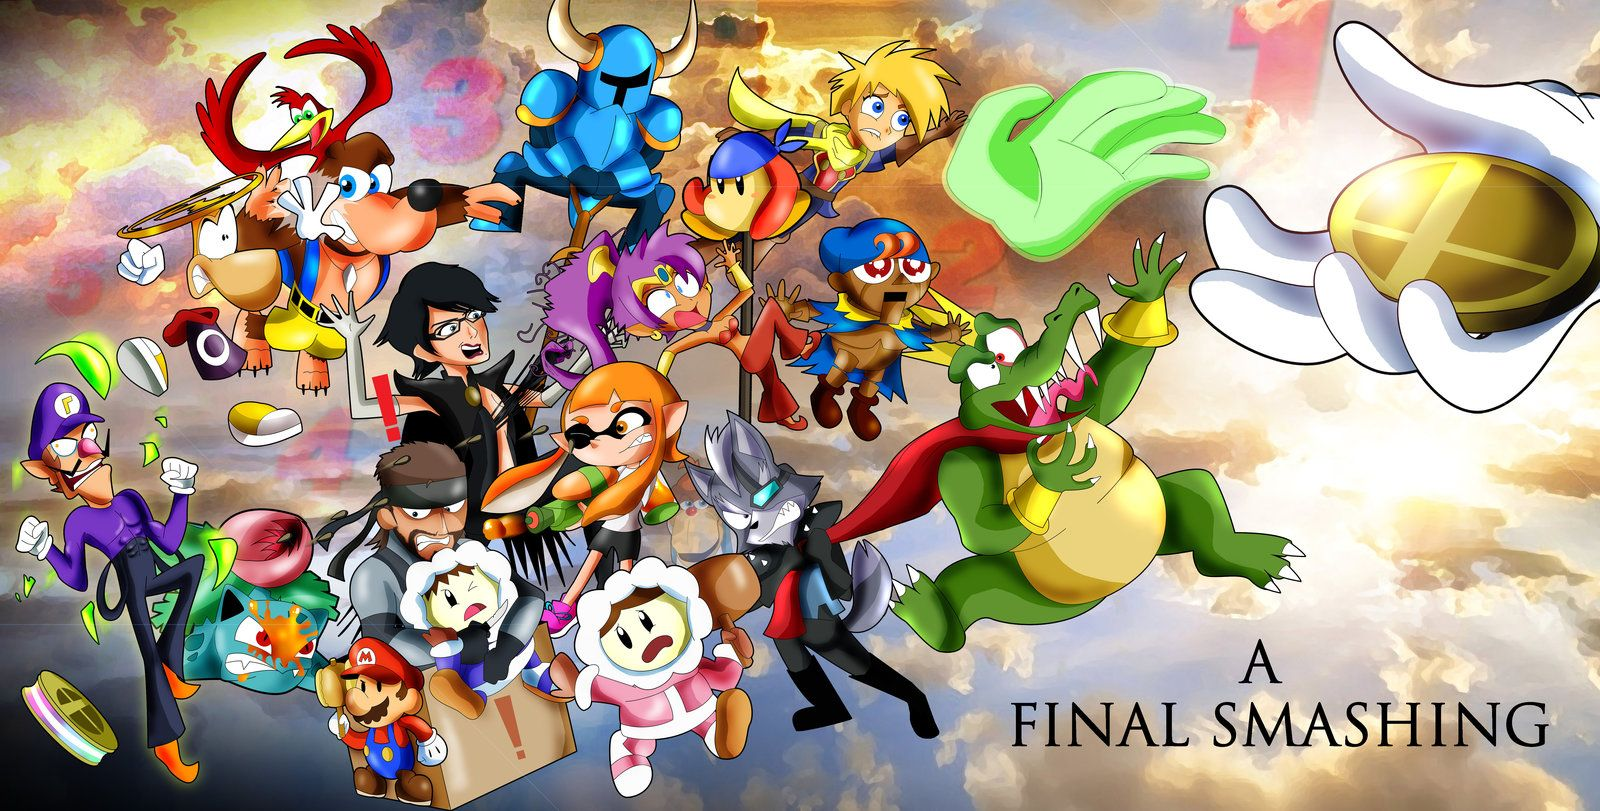 A Final Smashing! by xeternalflamebryx on DeviantArt